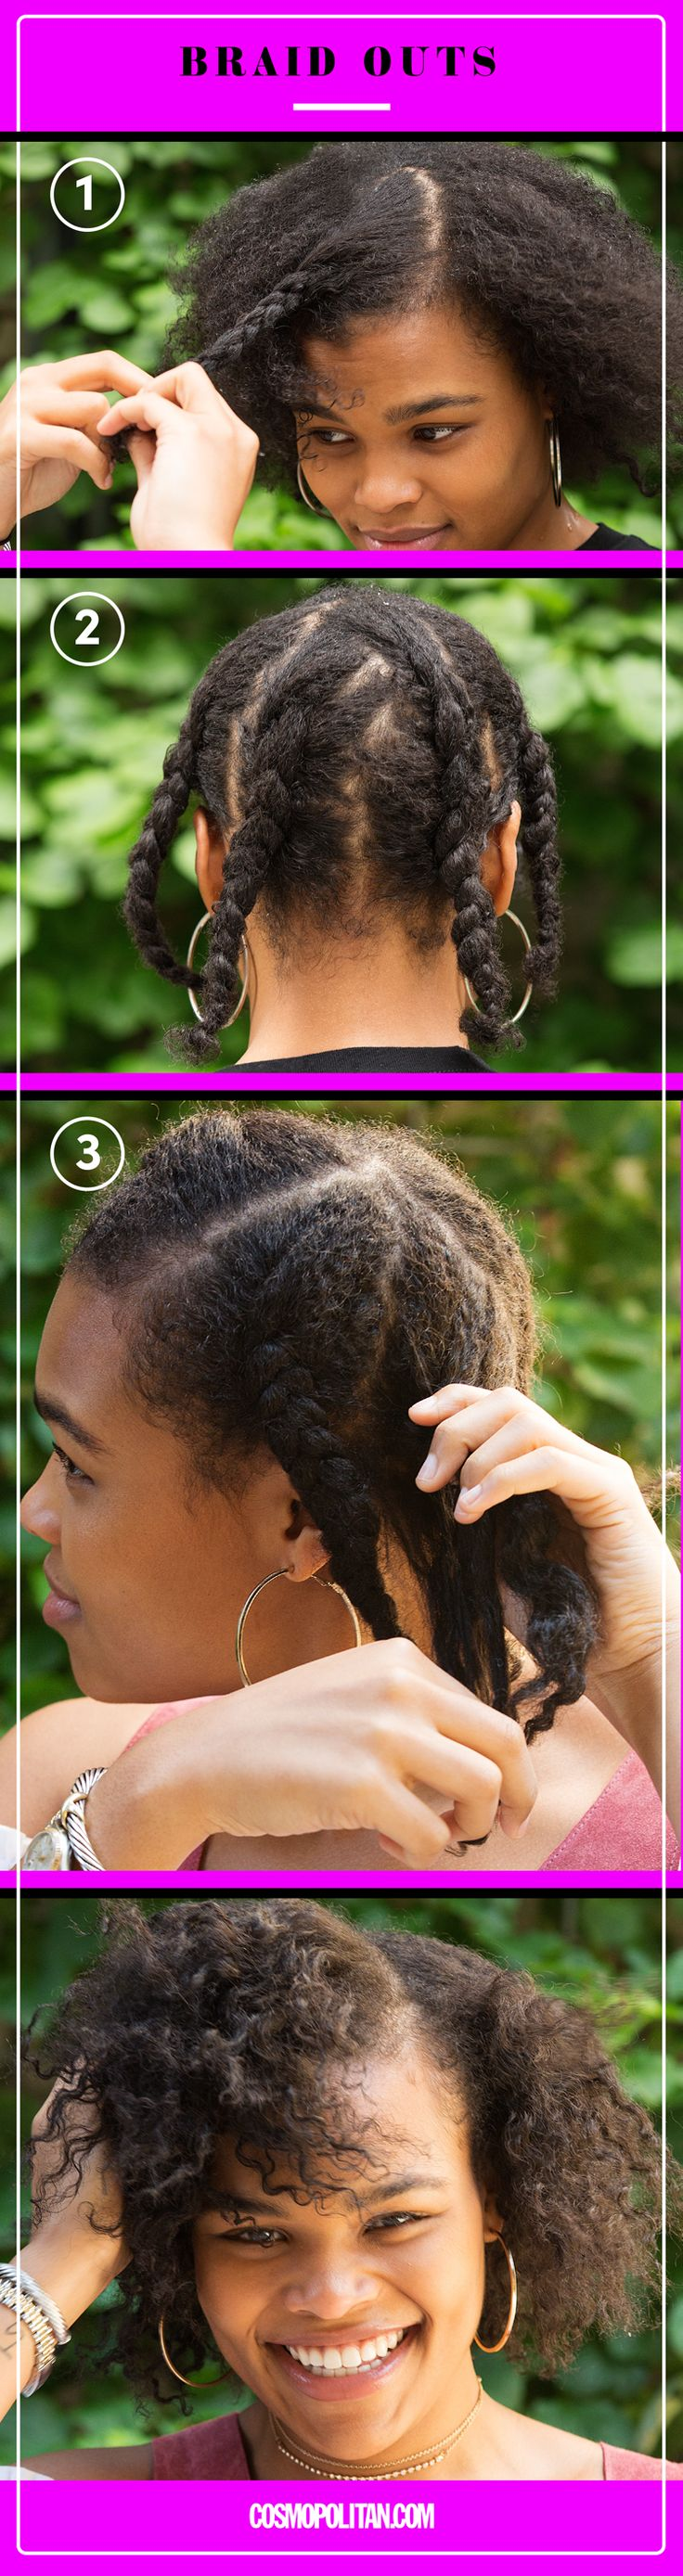 9 Easy No-Heat Ways to Style Wet Hair - Cosmopolitan.com